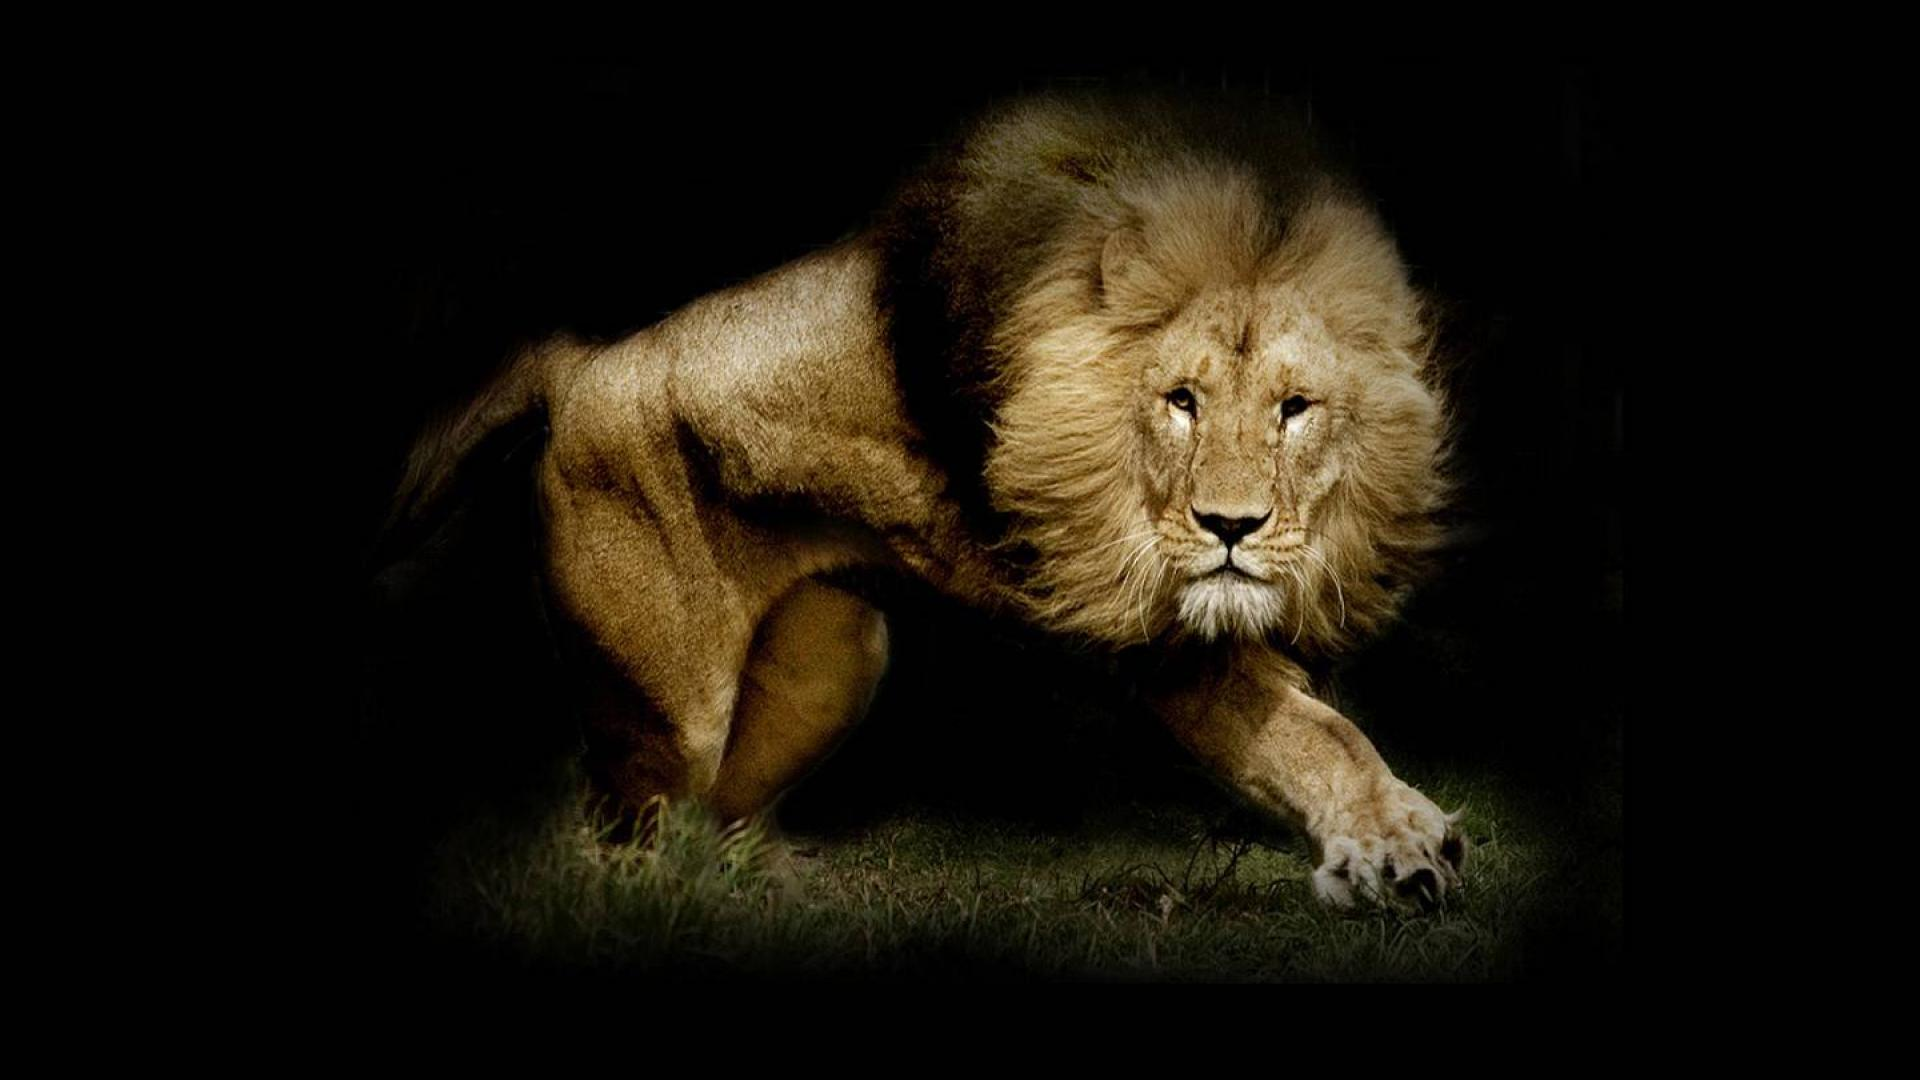 Lion WallpapersRoaring Lion Hd Wallpapers 1920x1080